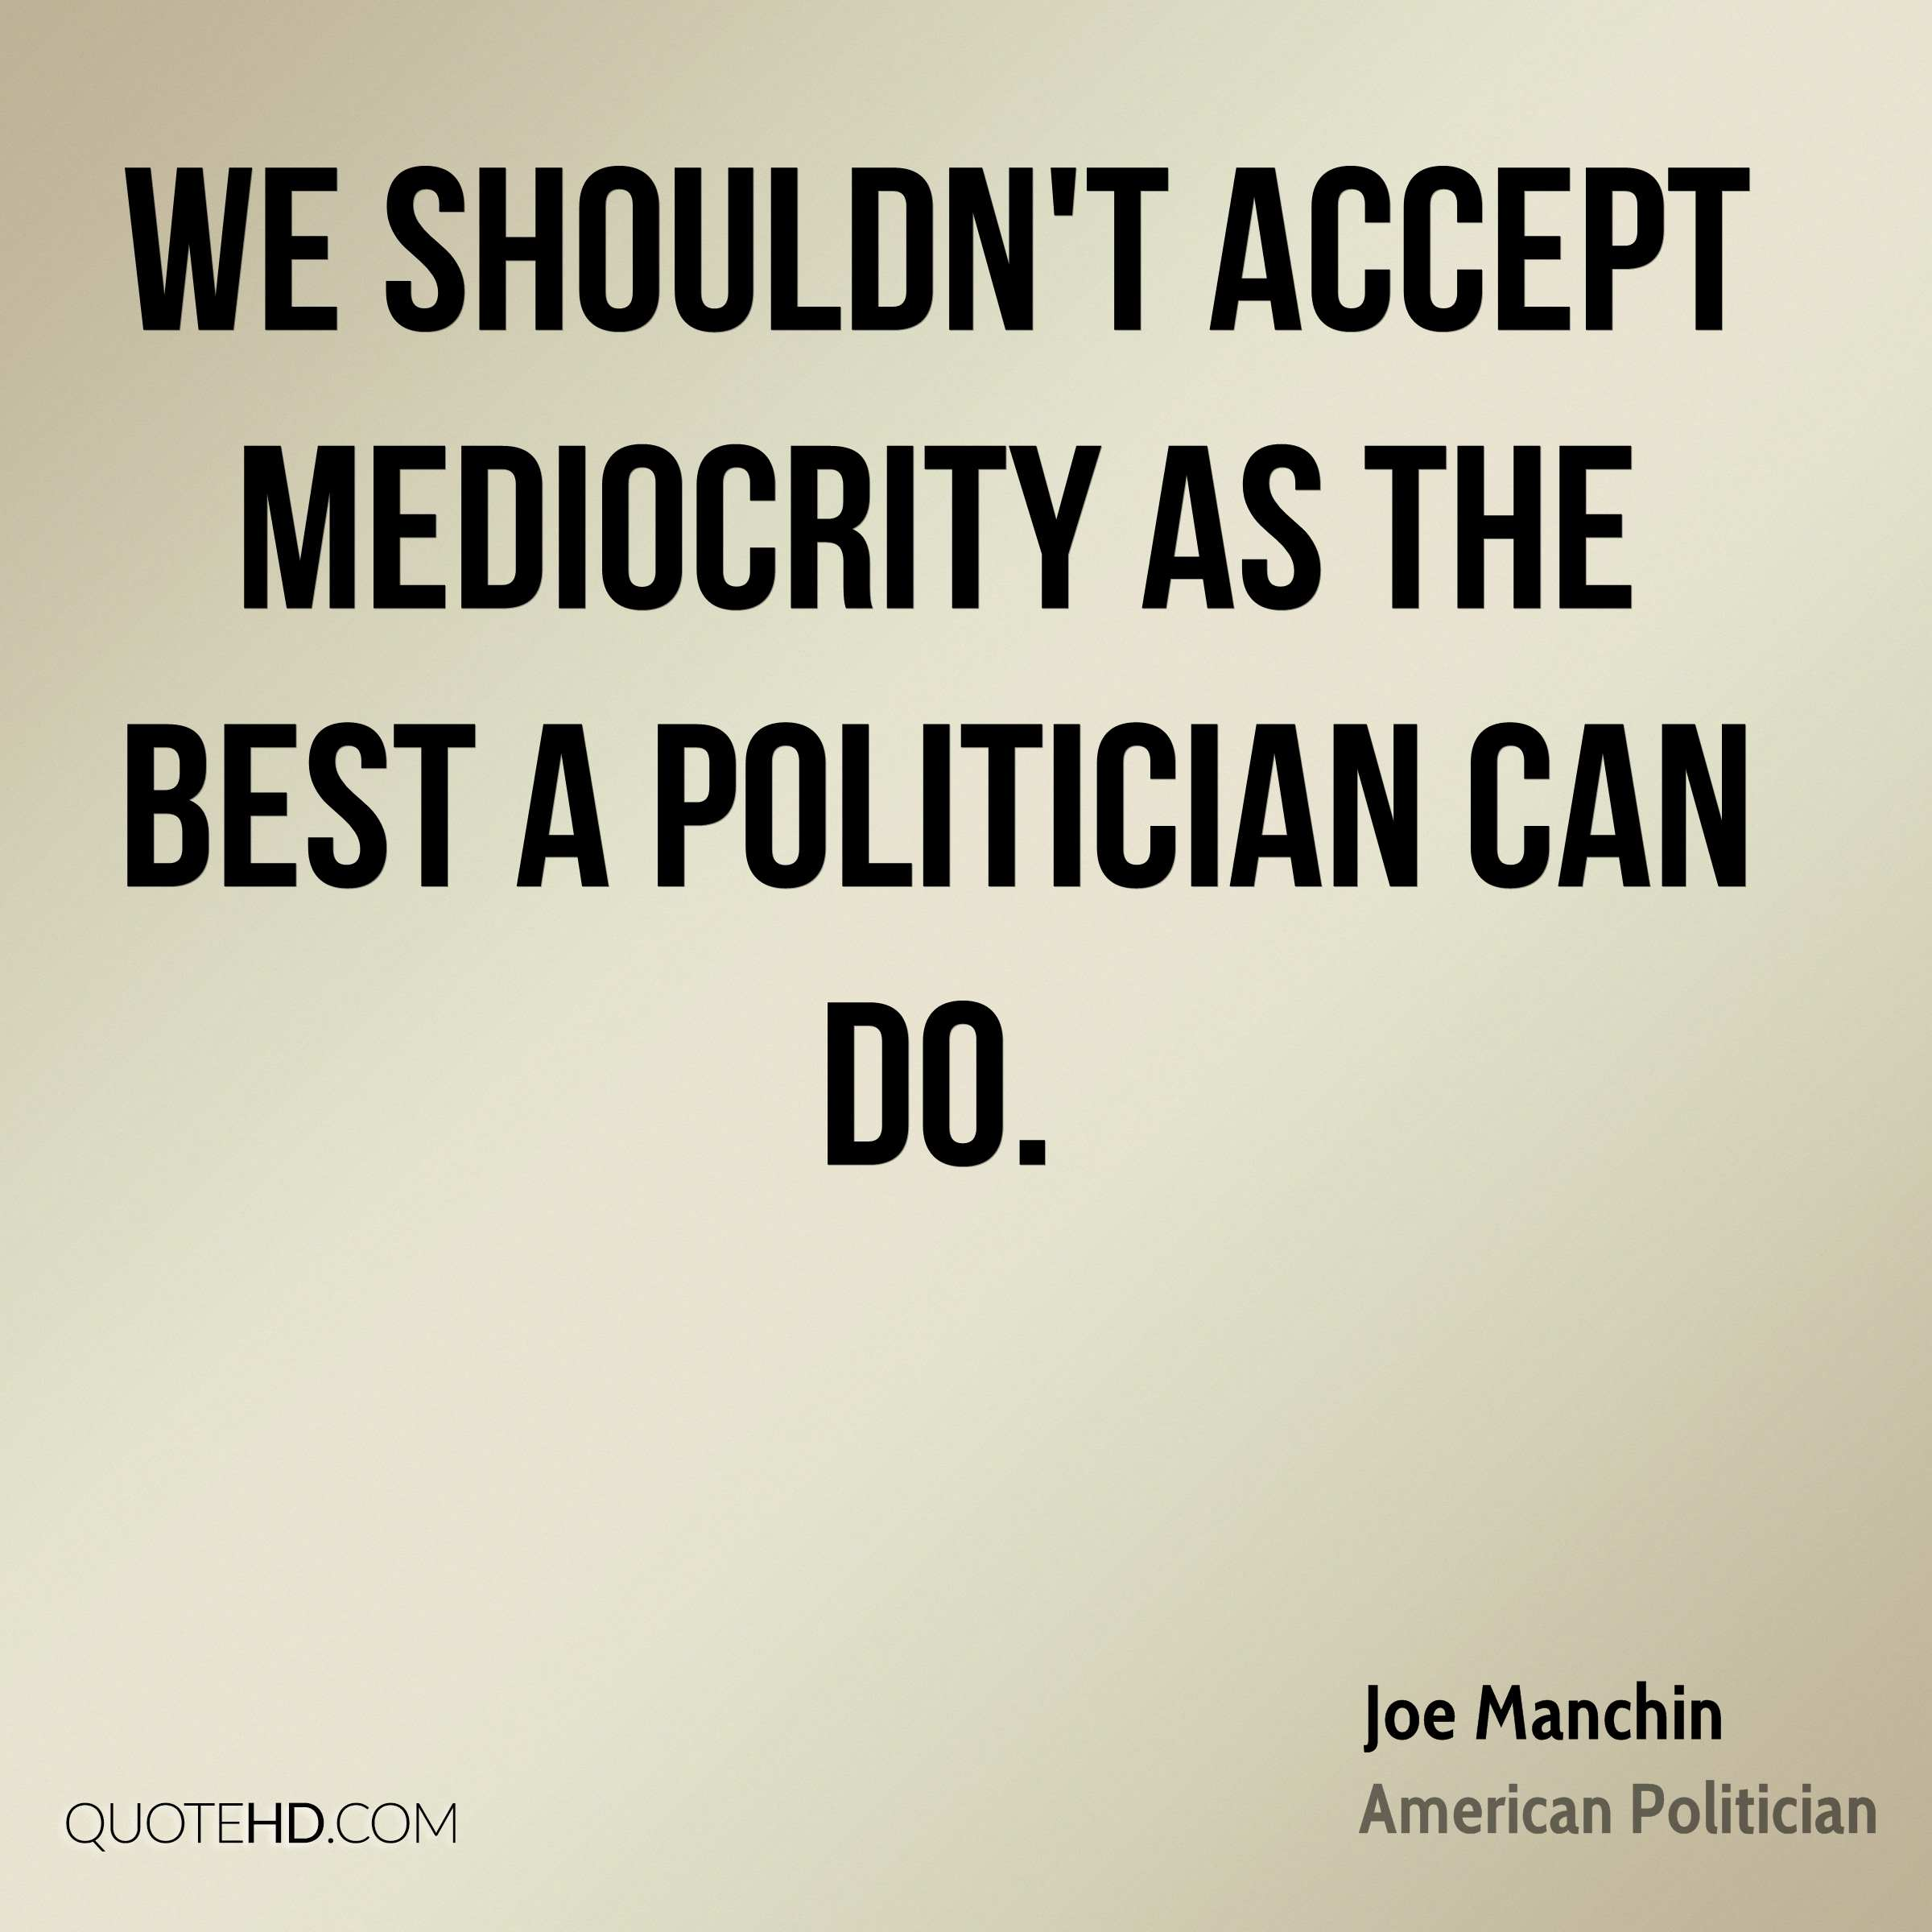 We shouldn't accept mediocrity as the best a politician can do.